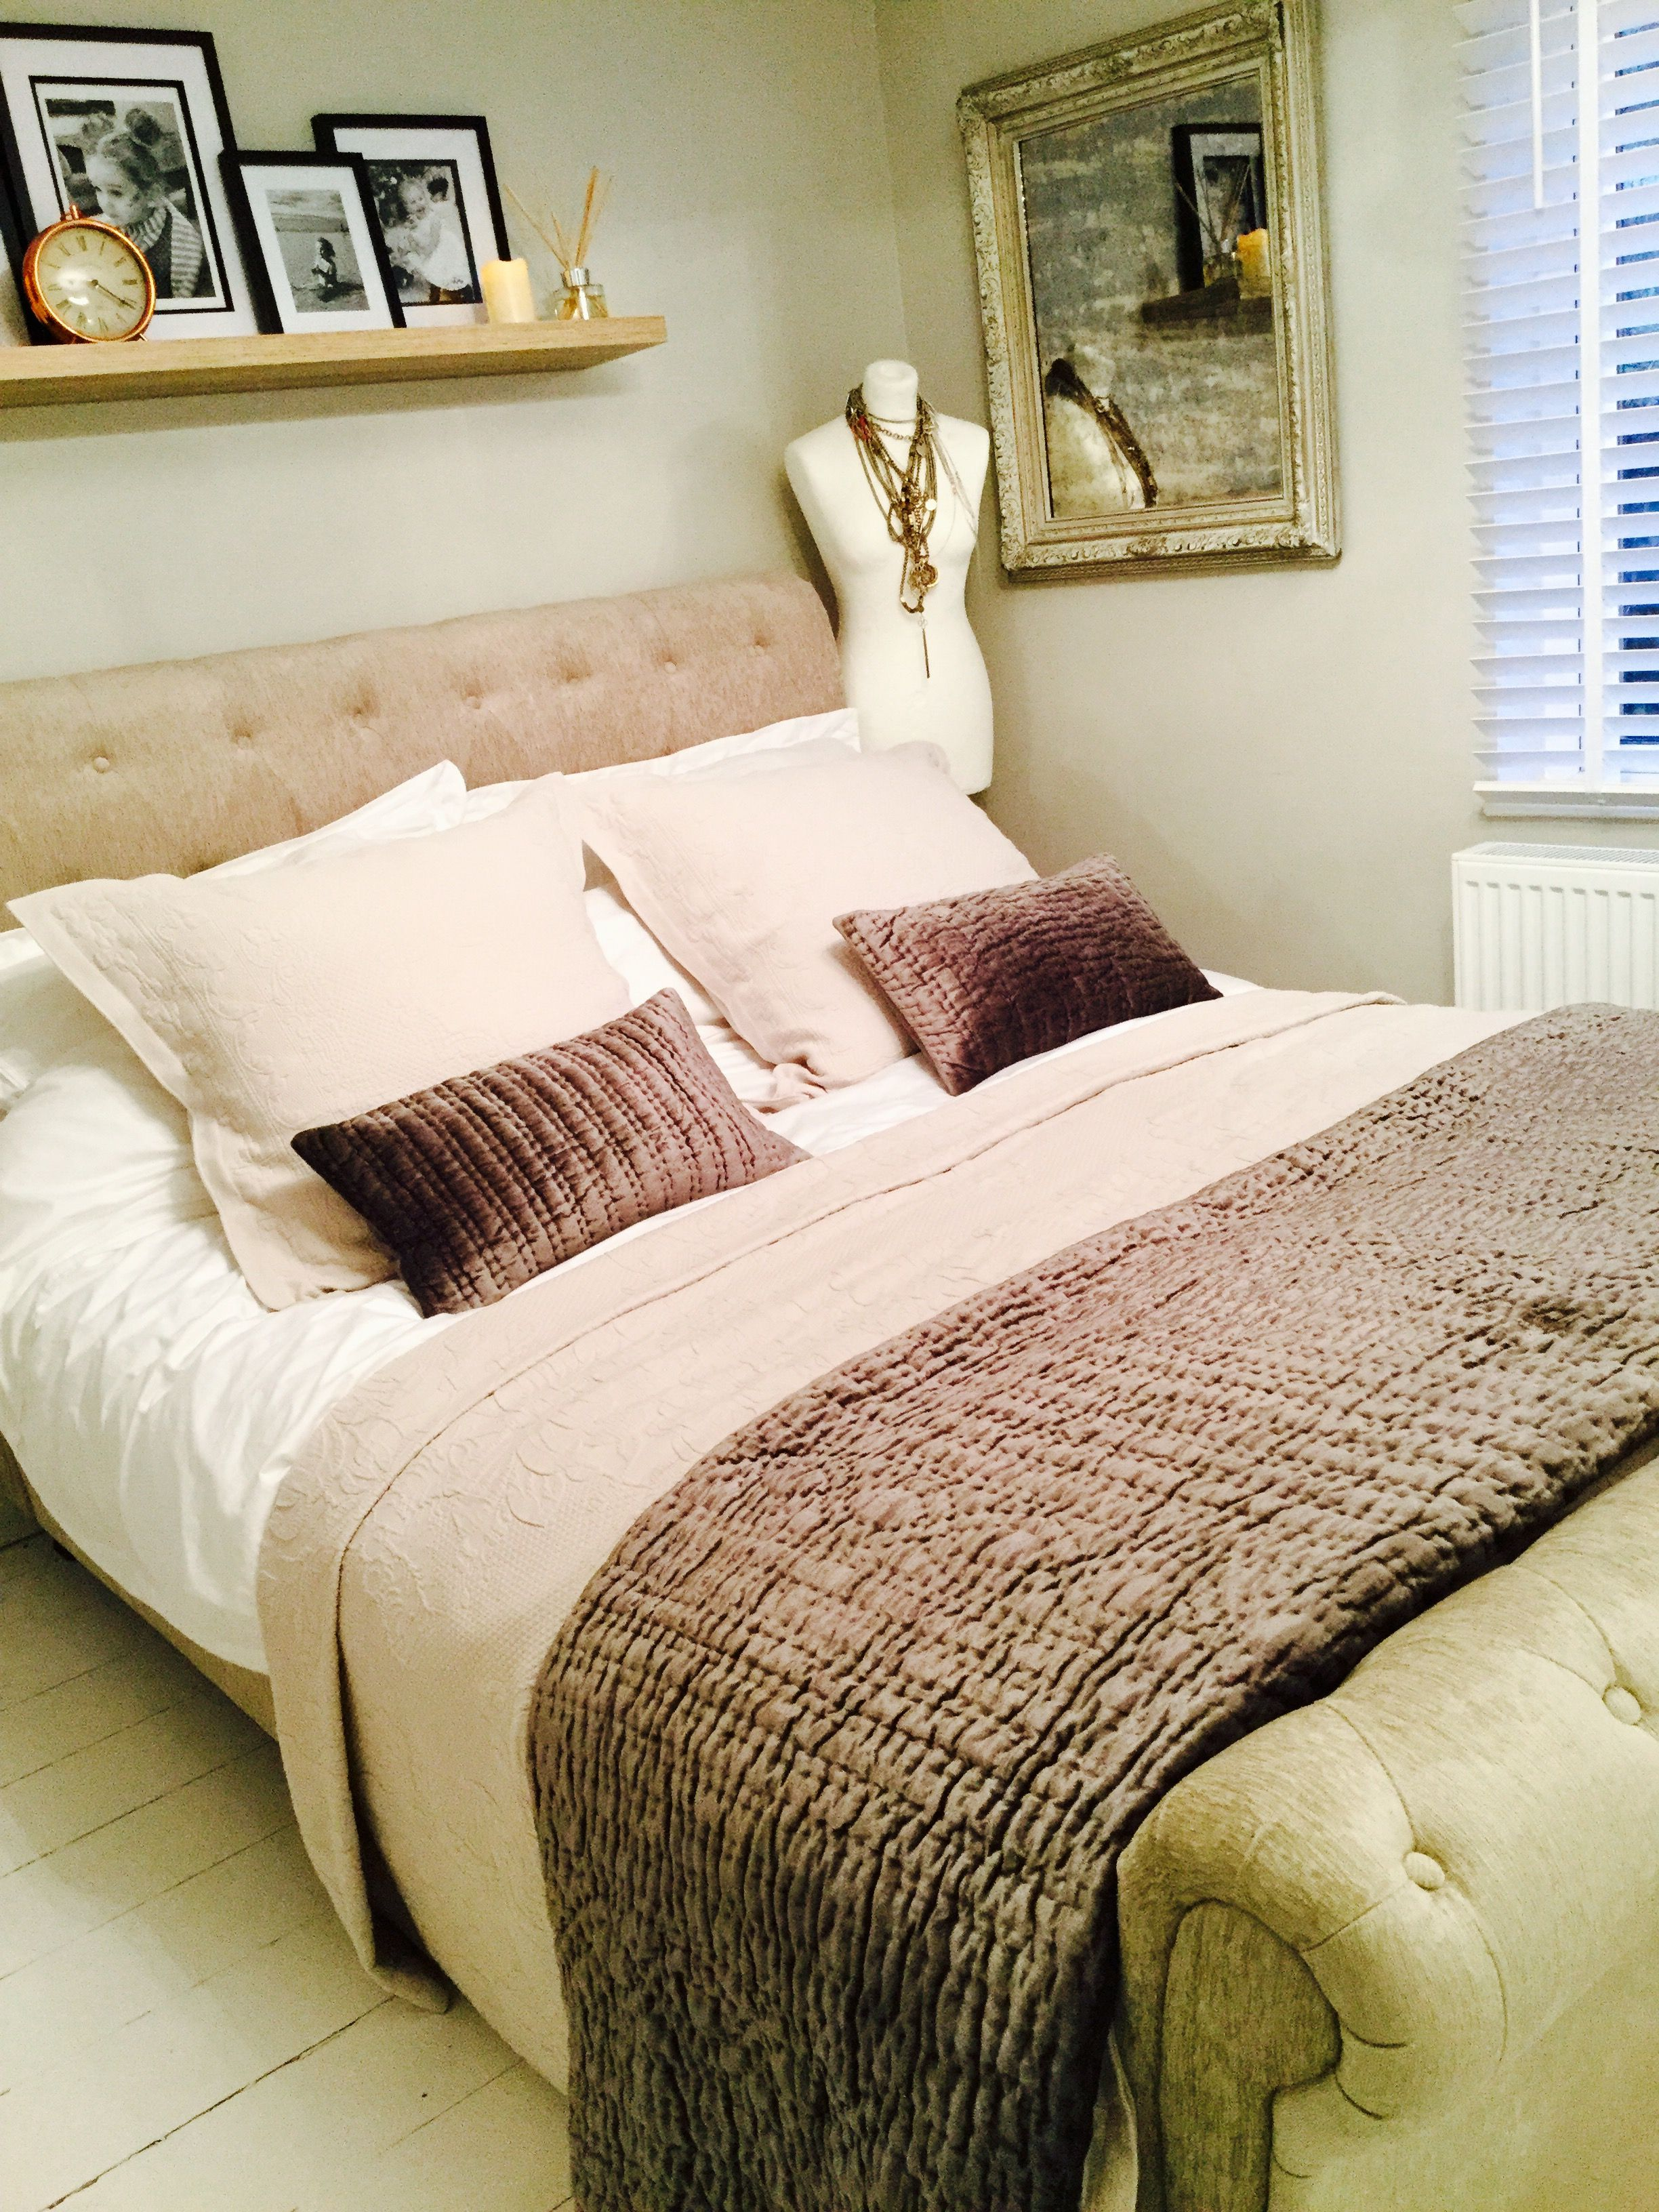 White company bedspread and cushions, distressed mirror